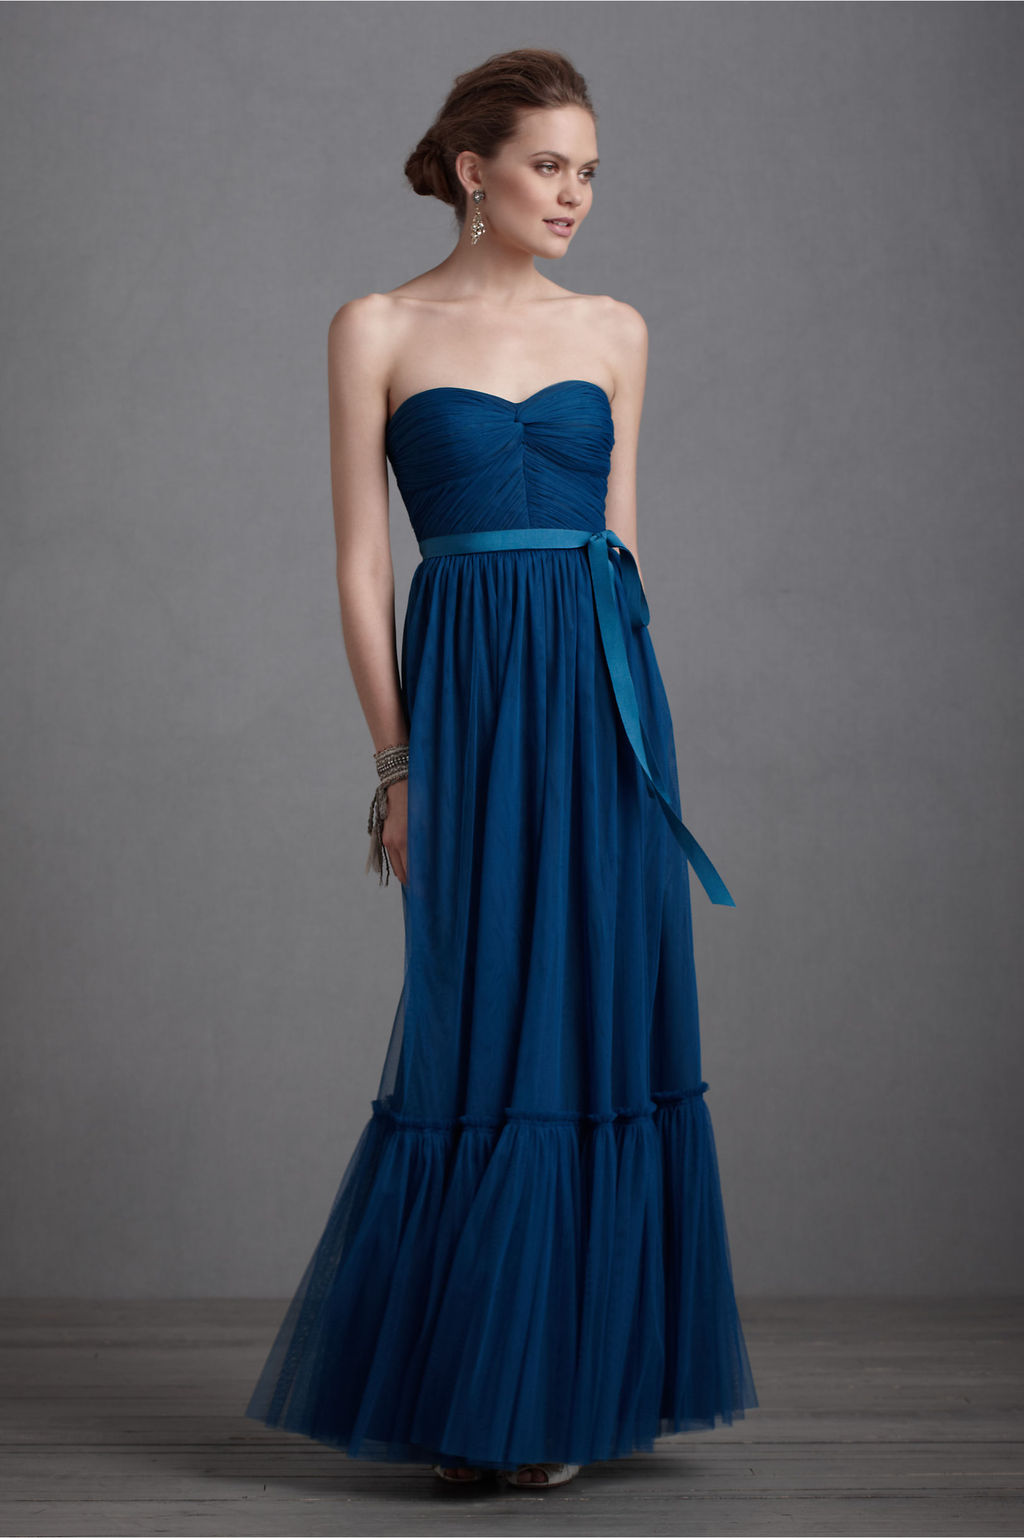 elegant navy blue bridesmaid dress long gown bhldn ForLong Blue Dress For Wedding